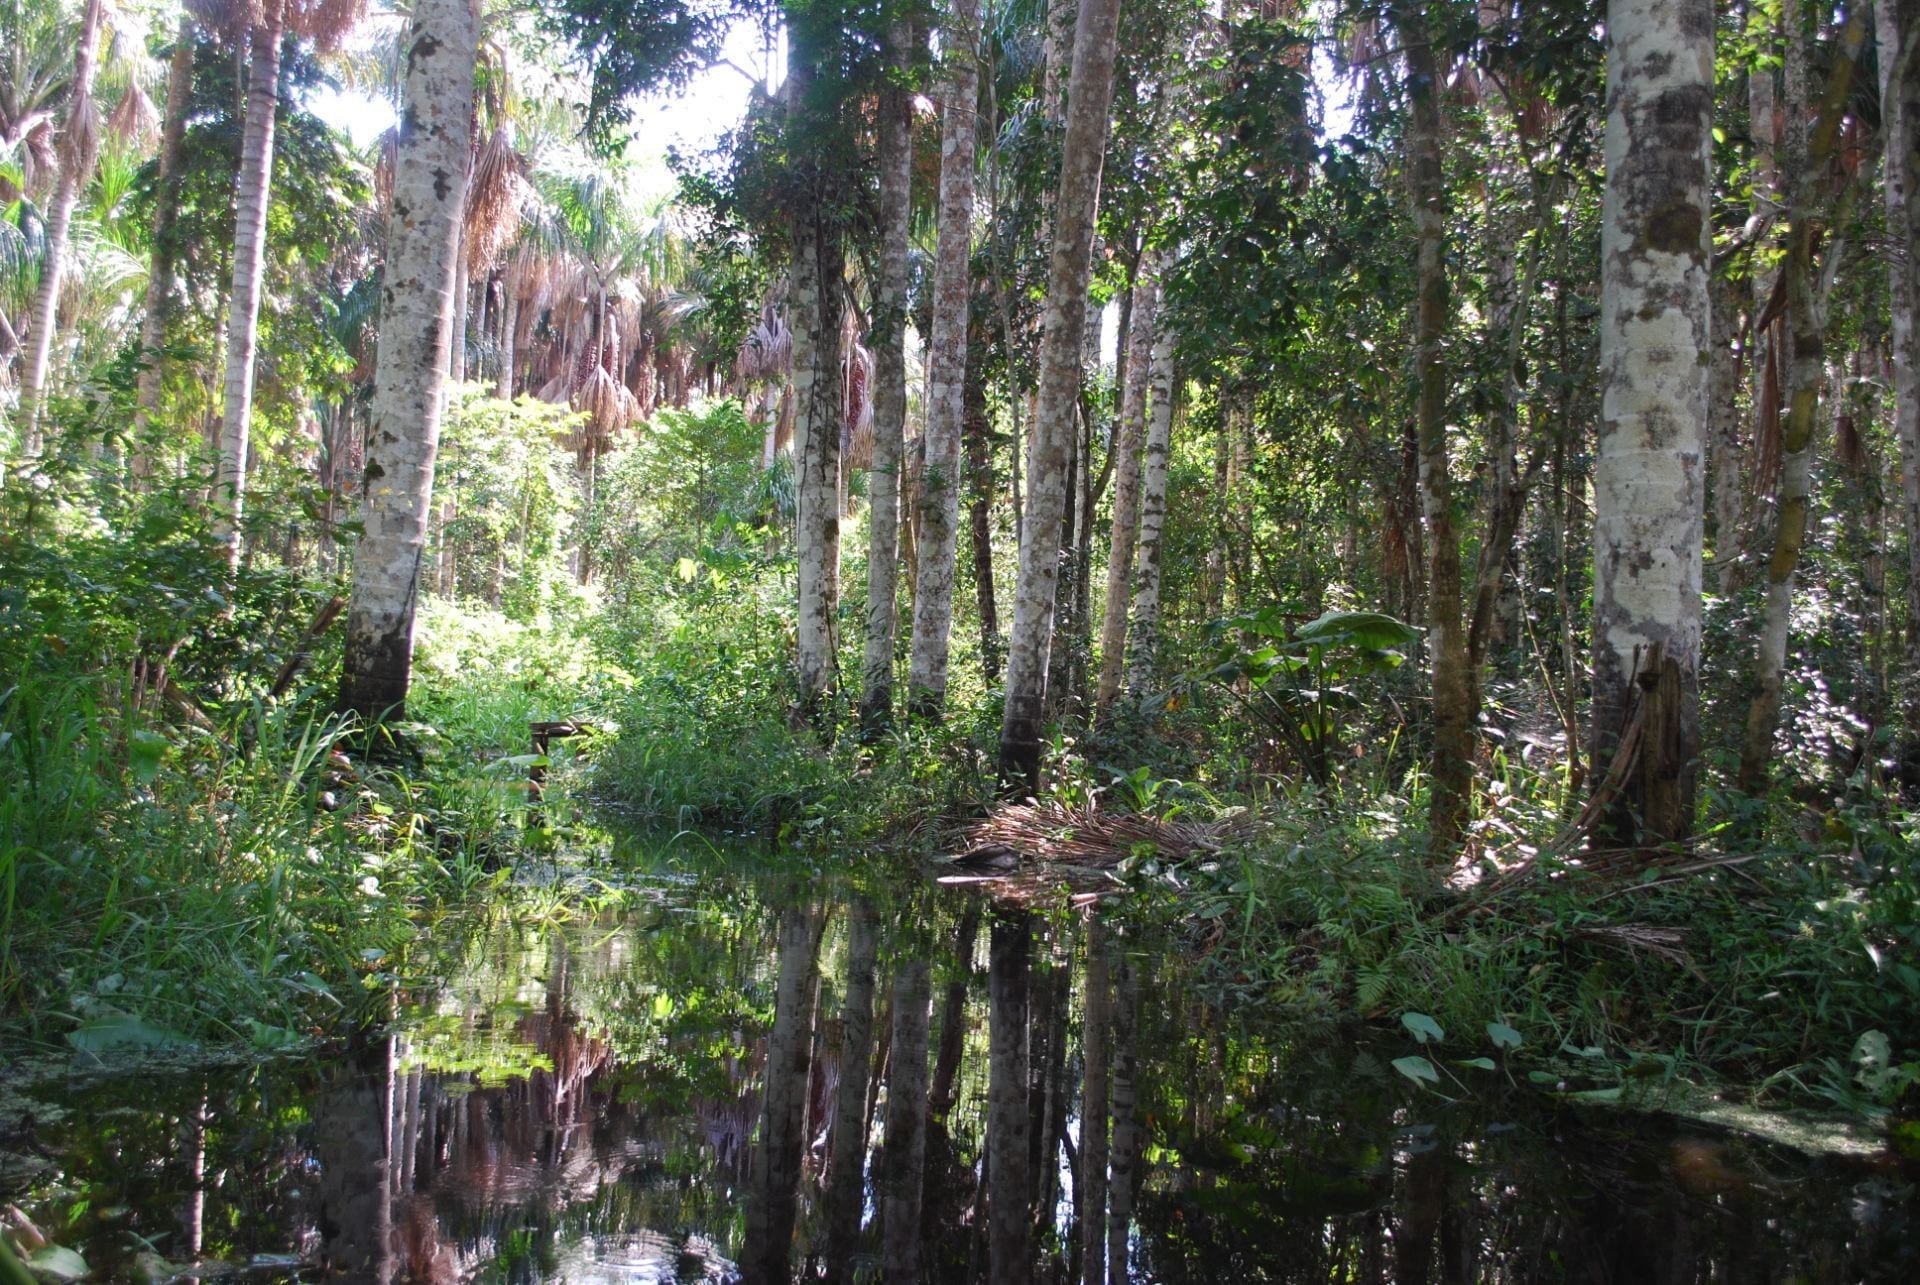 Trees in a swamp in the Amazon rain forest.